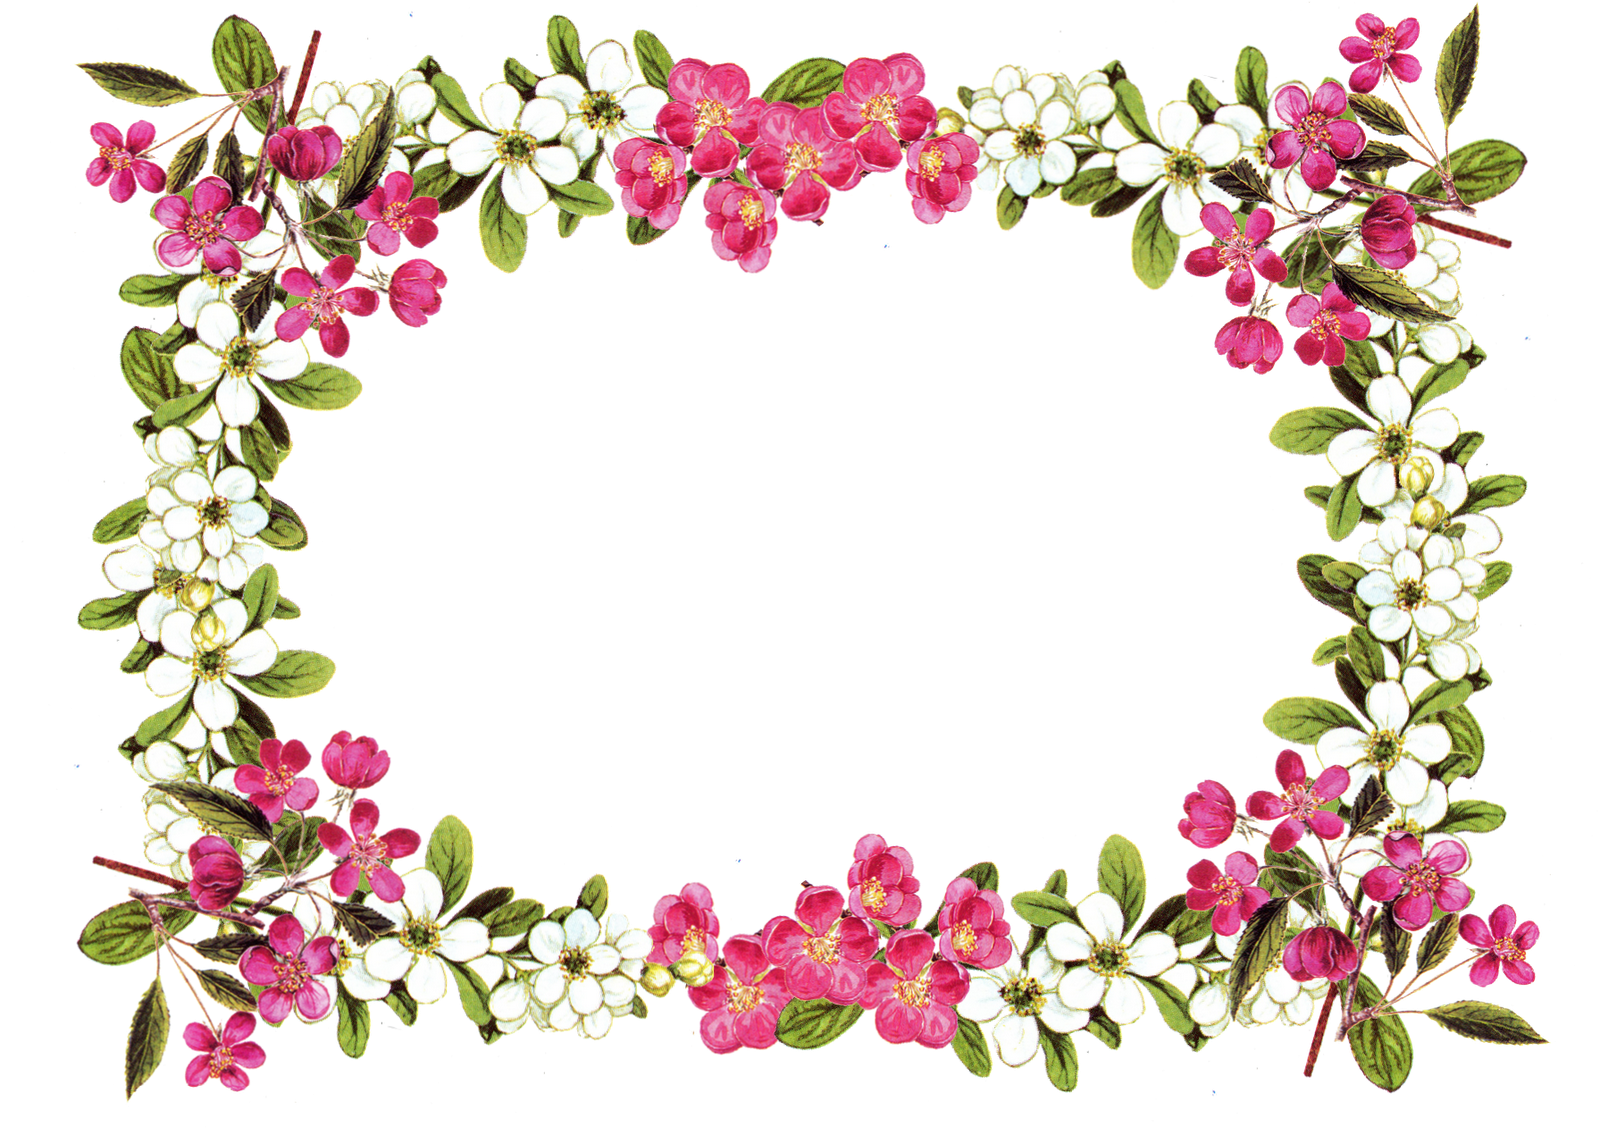 Flower Arrangement Clipart